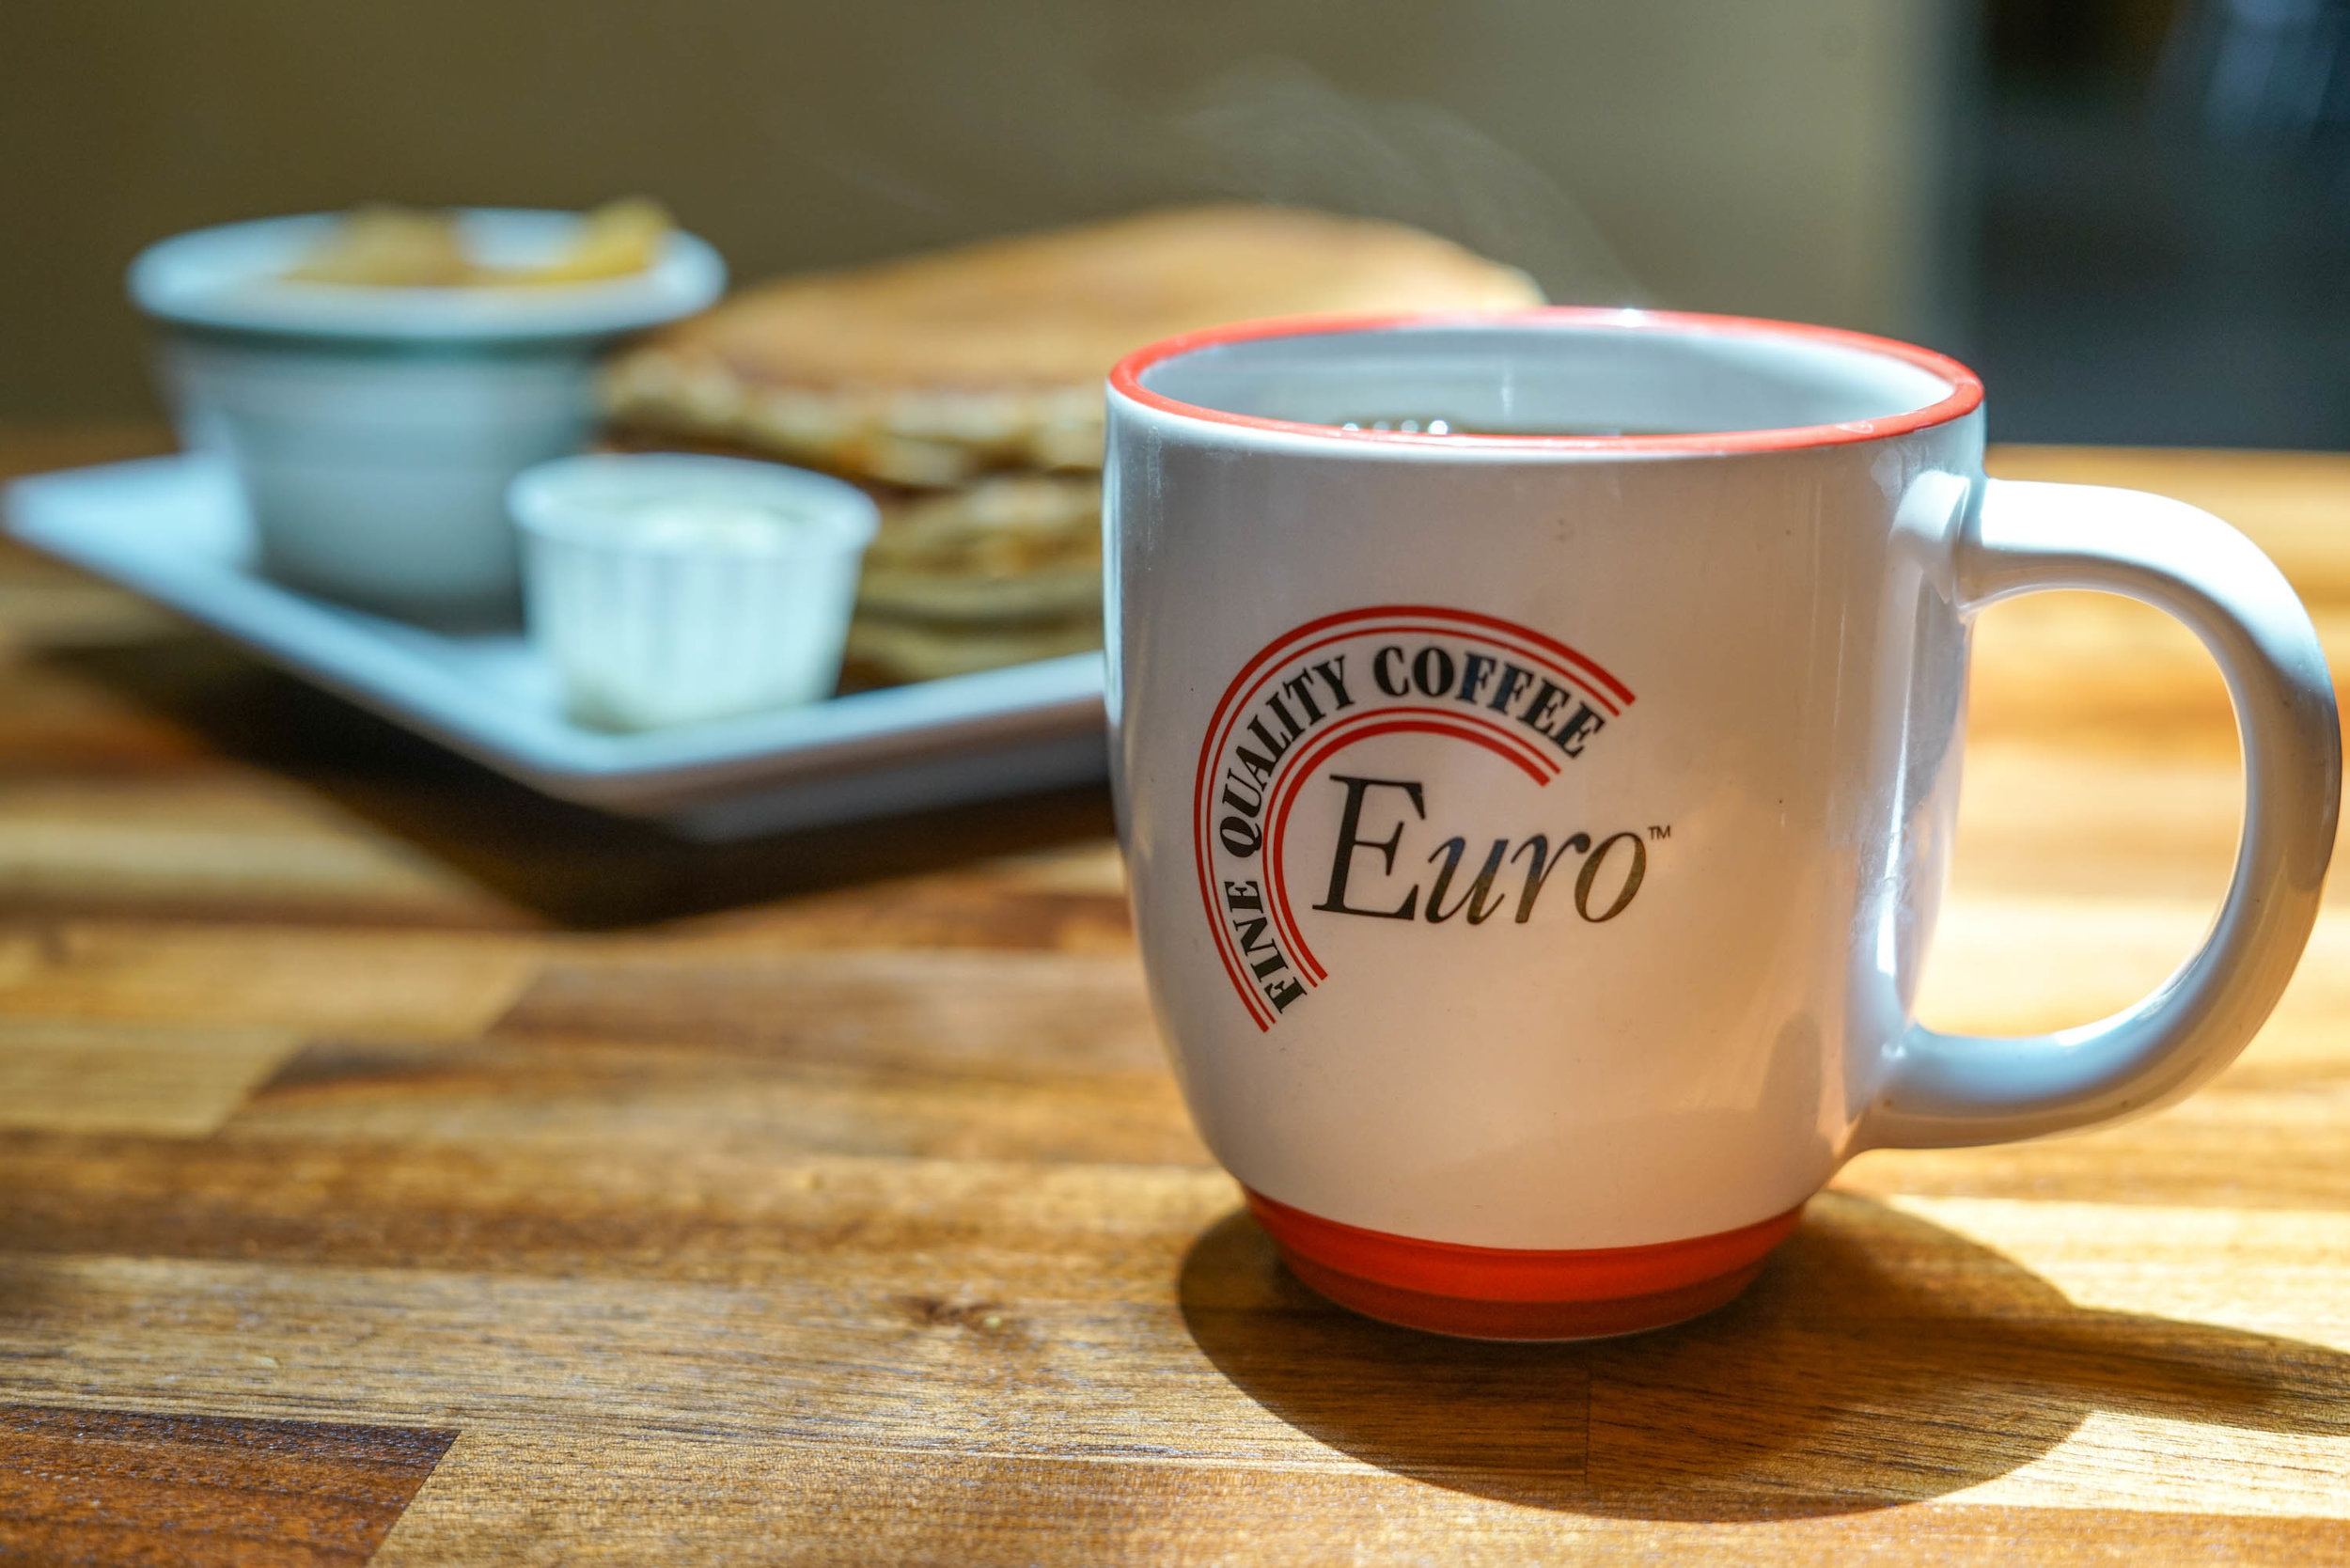 euro coffee cup with pancakes in the background